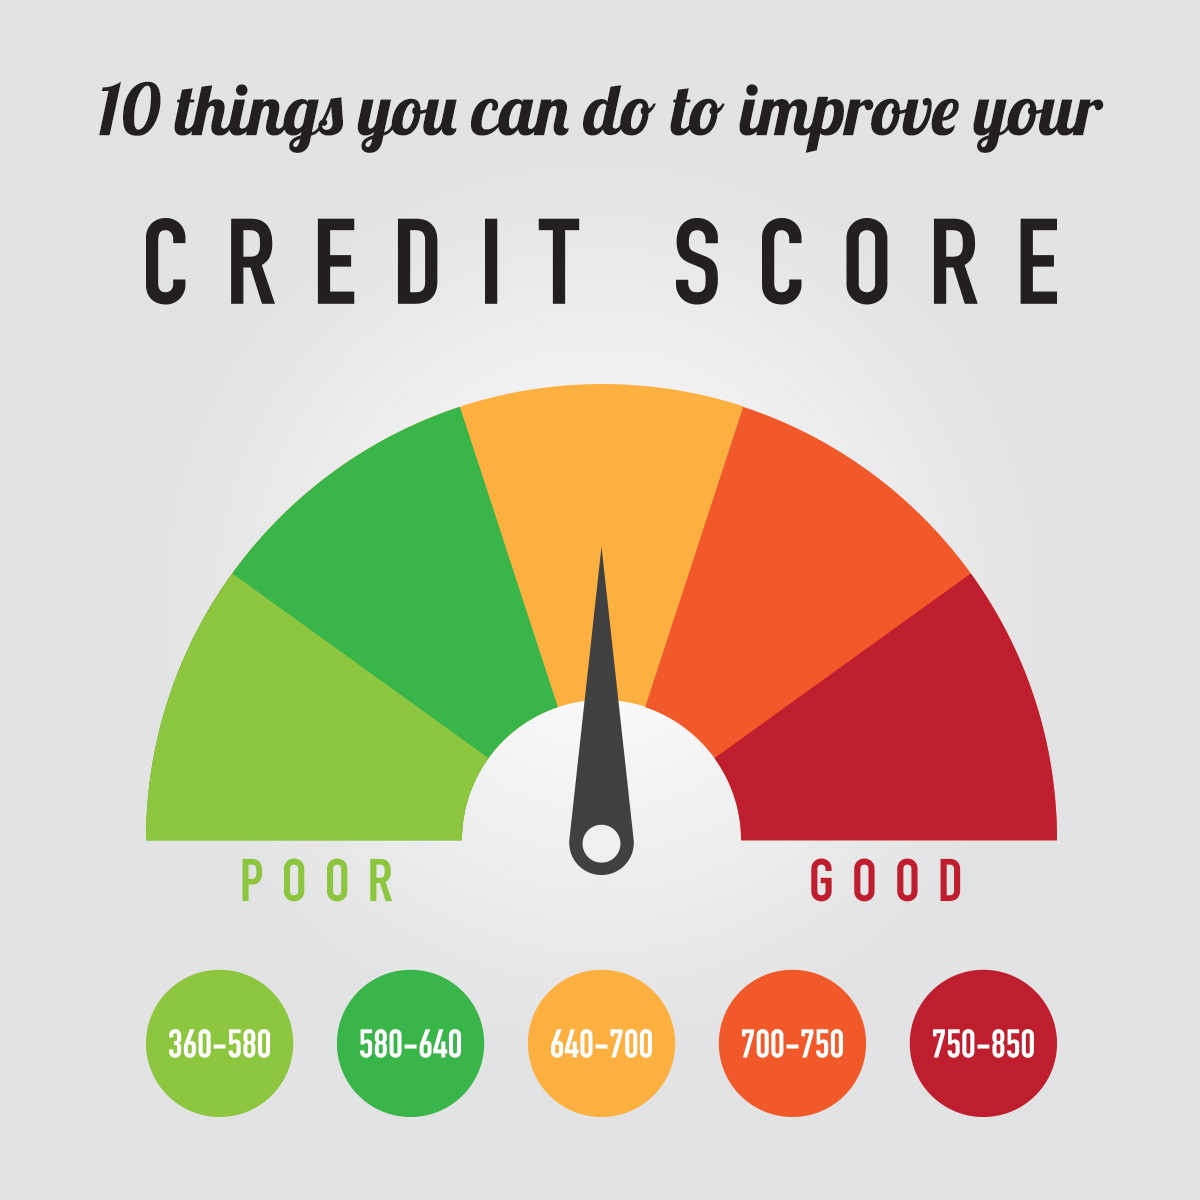 10 Things You Can Do To Improve Your Credit Score